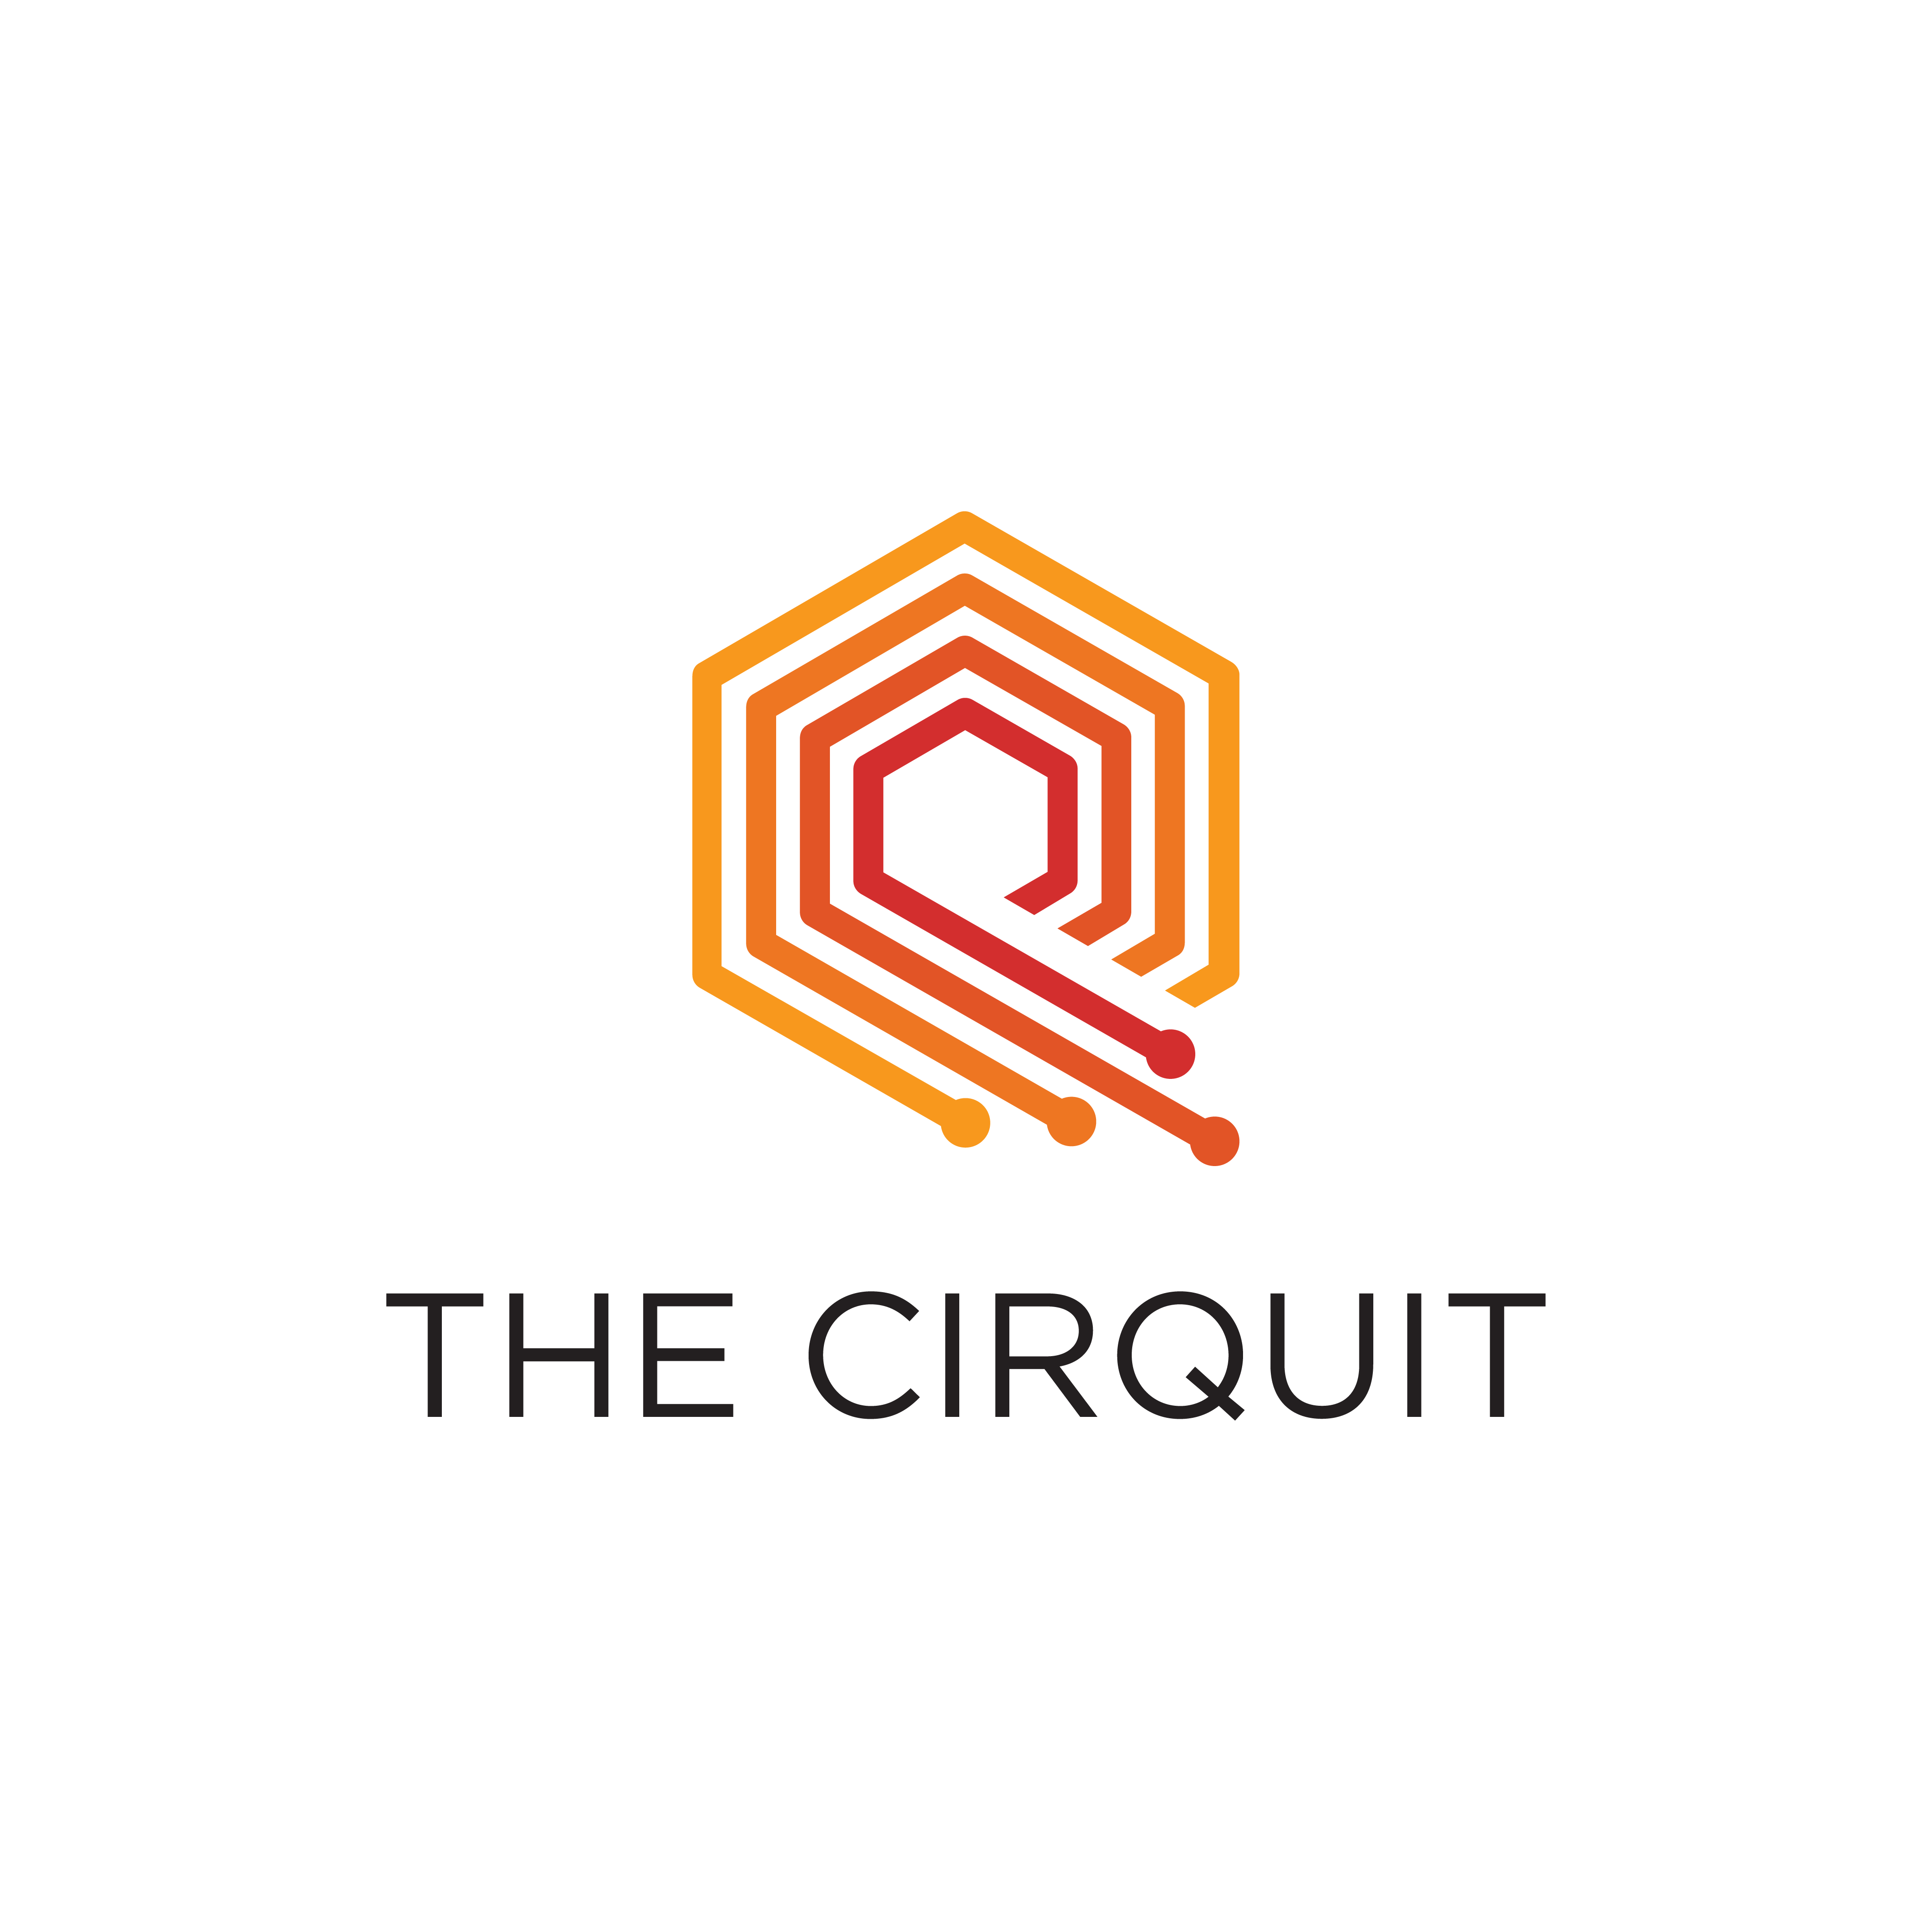 The Cirquit logo